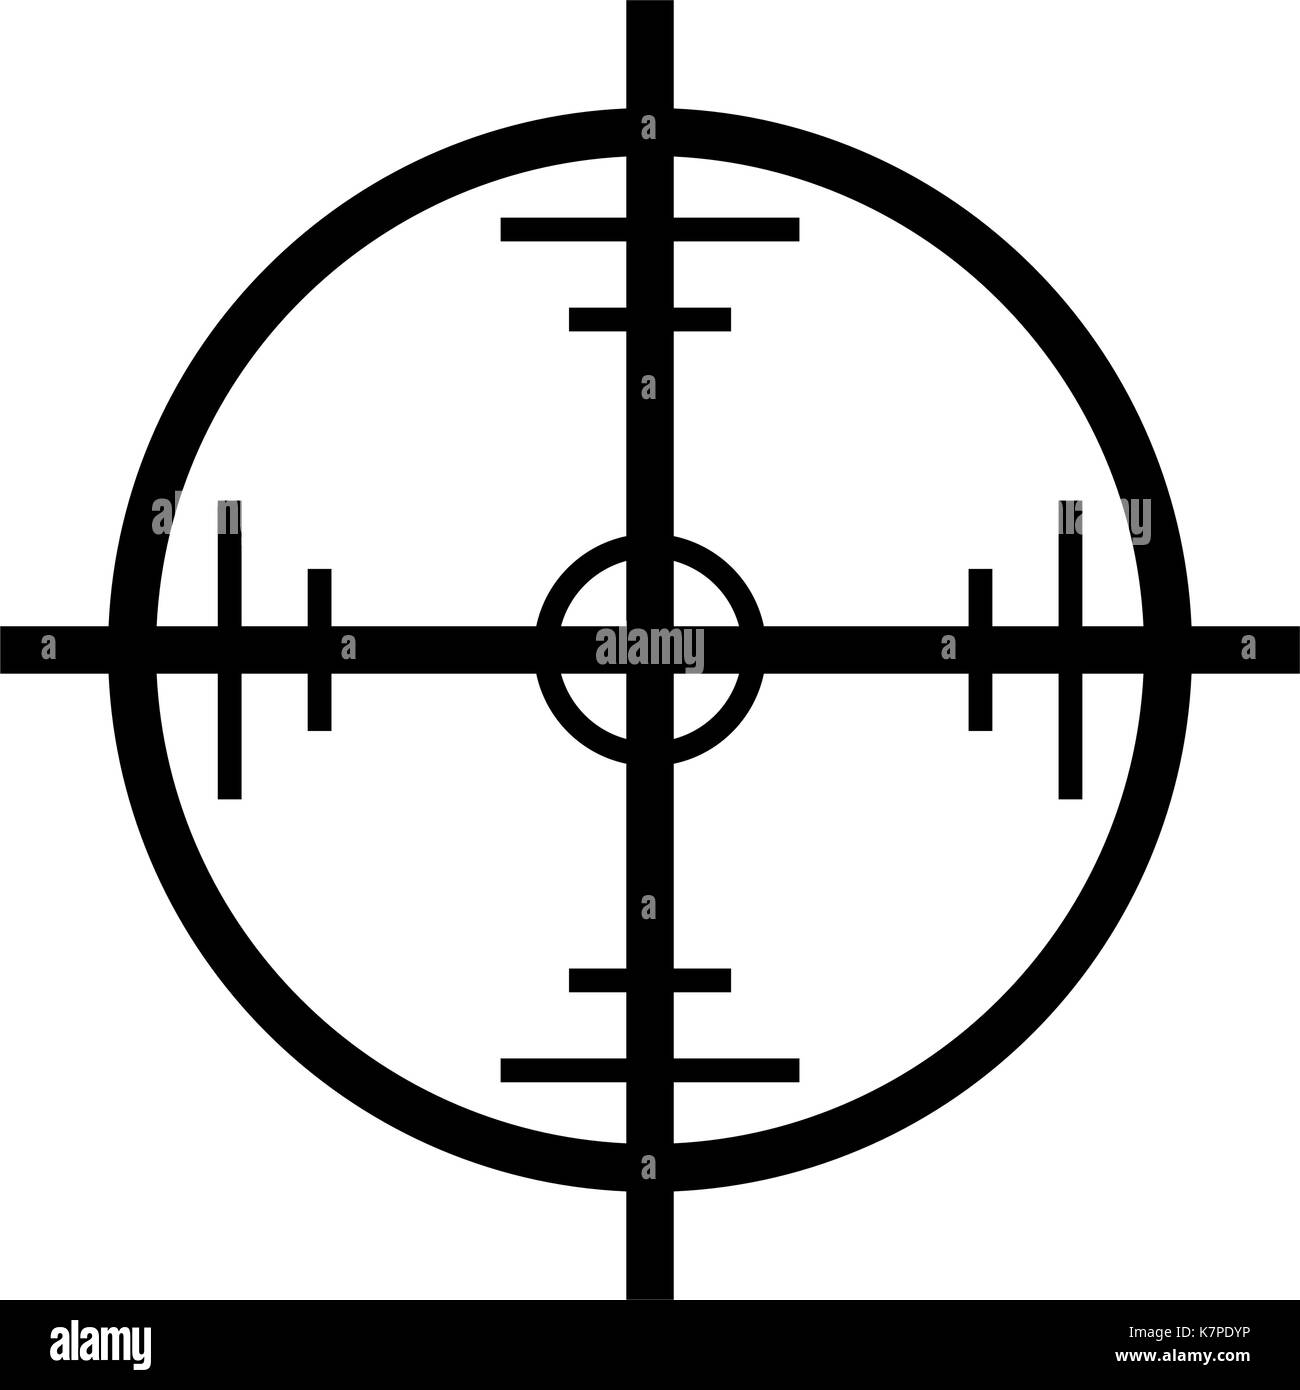 Crosshair target vector symbol icon design beautiful illustration crosshair target vector symbol icon design beautiful illustration isolated on white background buycottarizona Image collections